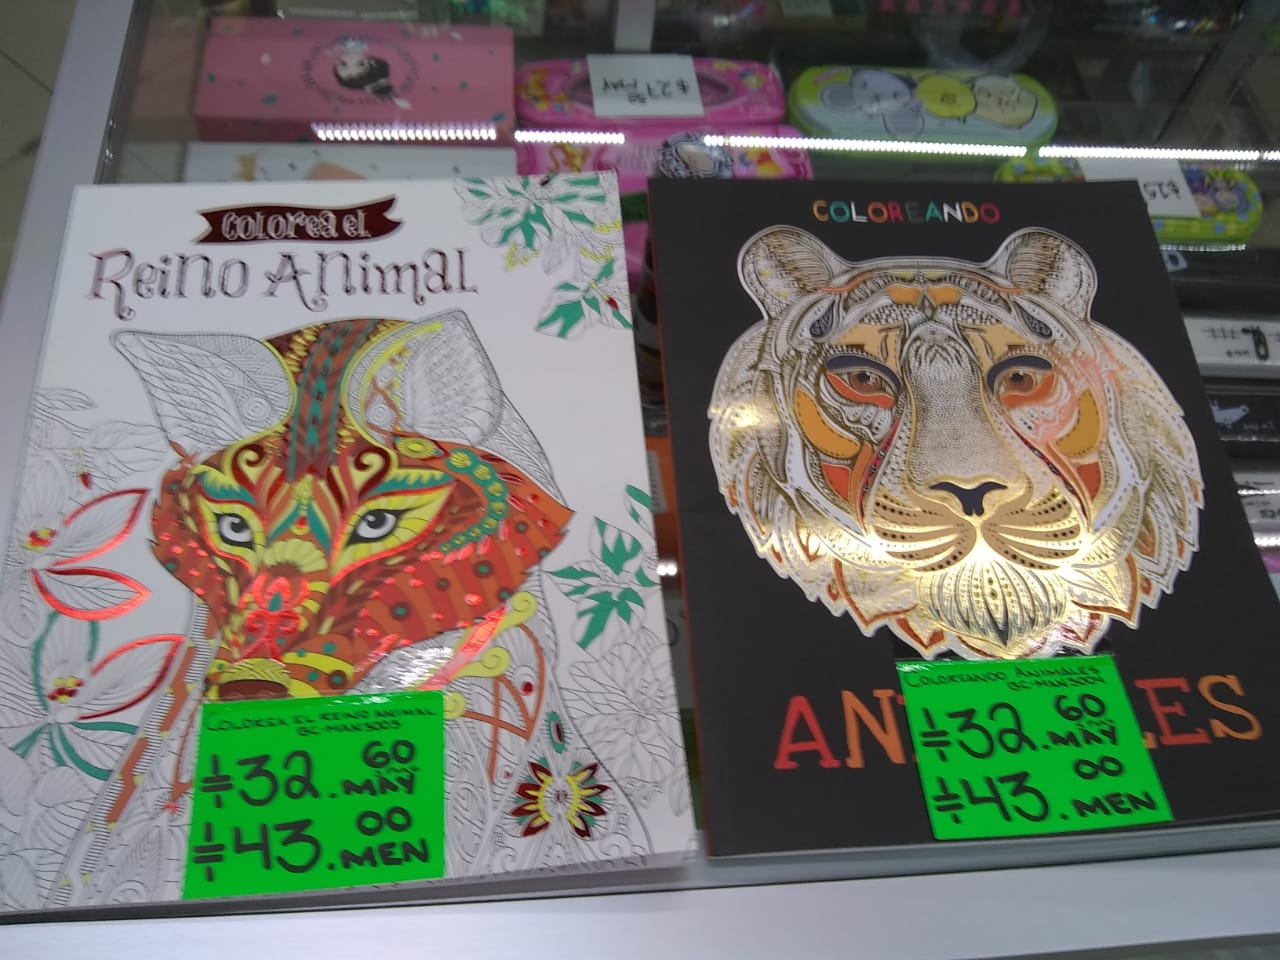 3 Libros para colorear: reino animal, coloreando animales. Precio unitario $32.60